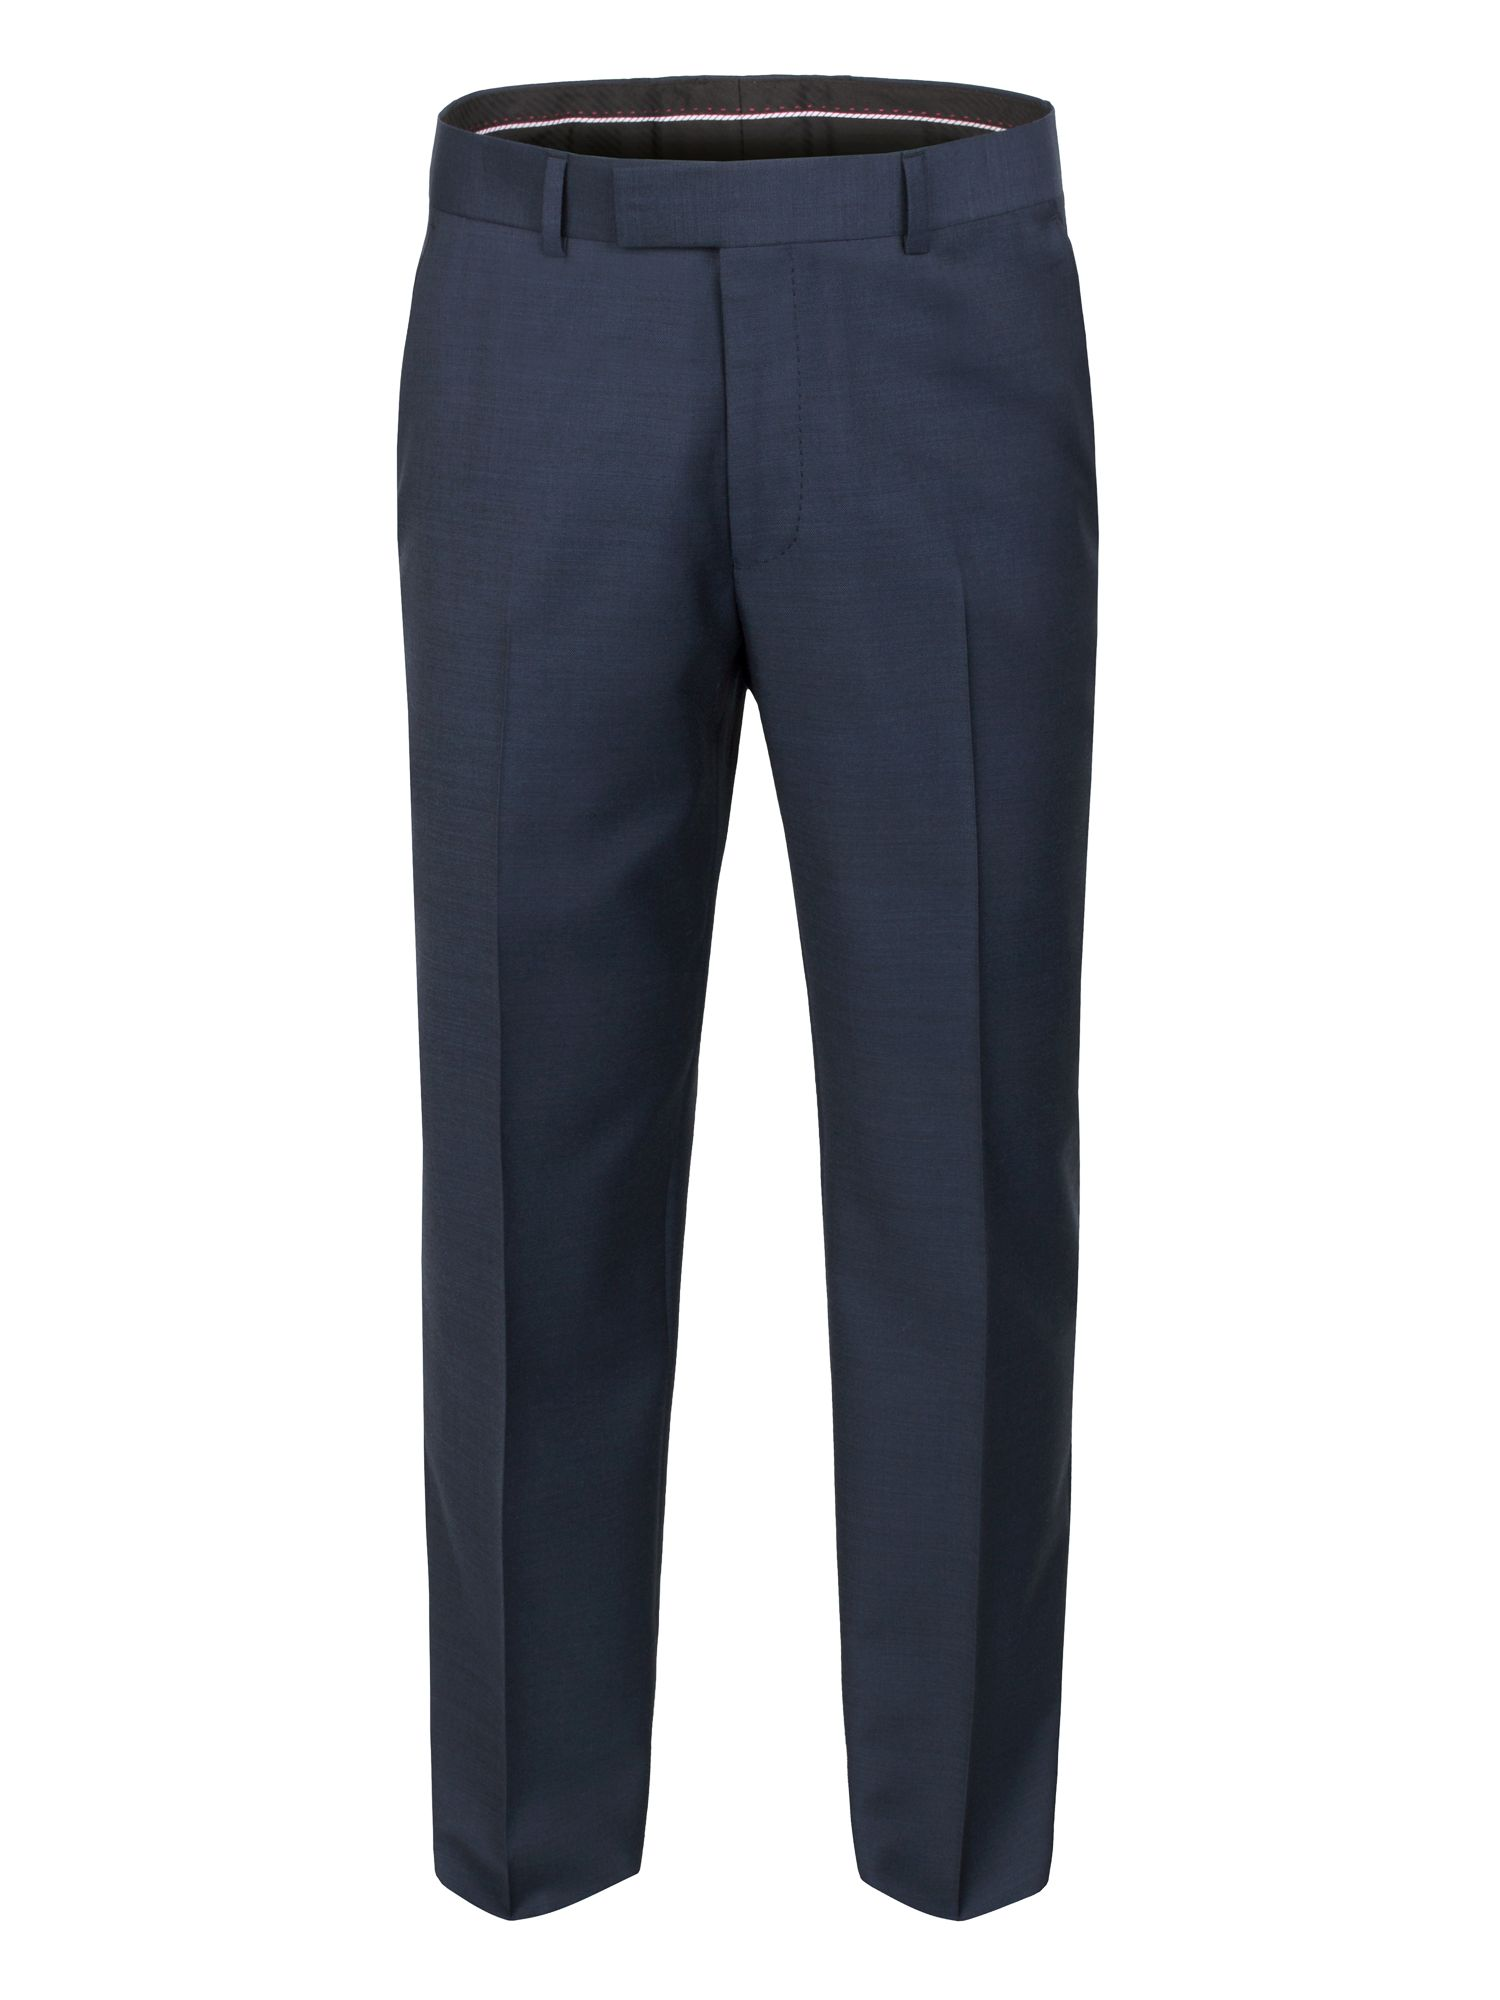 Blue sharkskin trouser